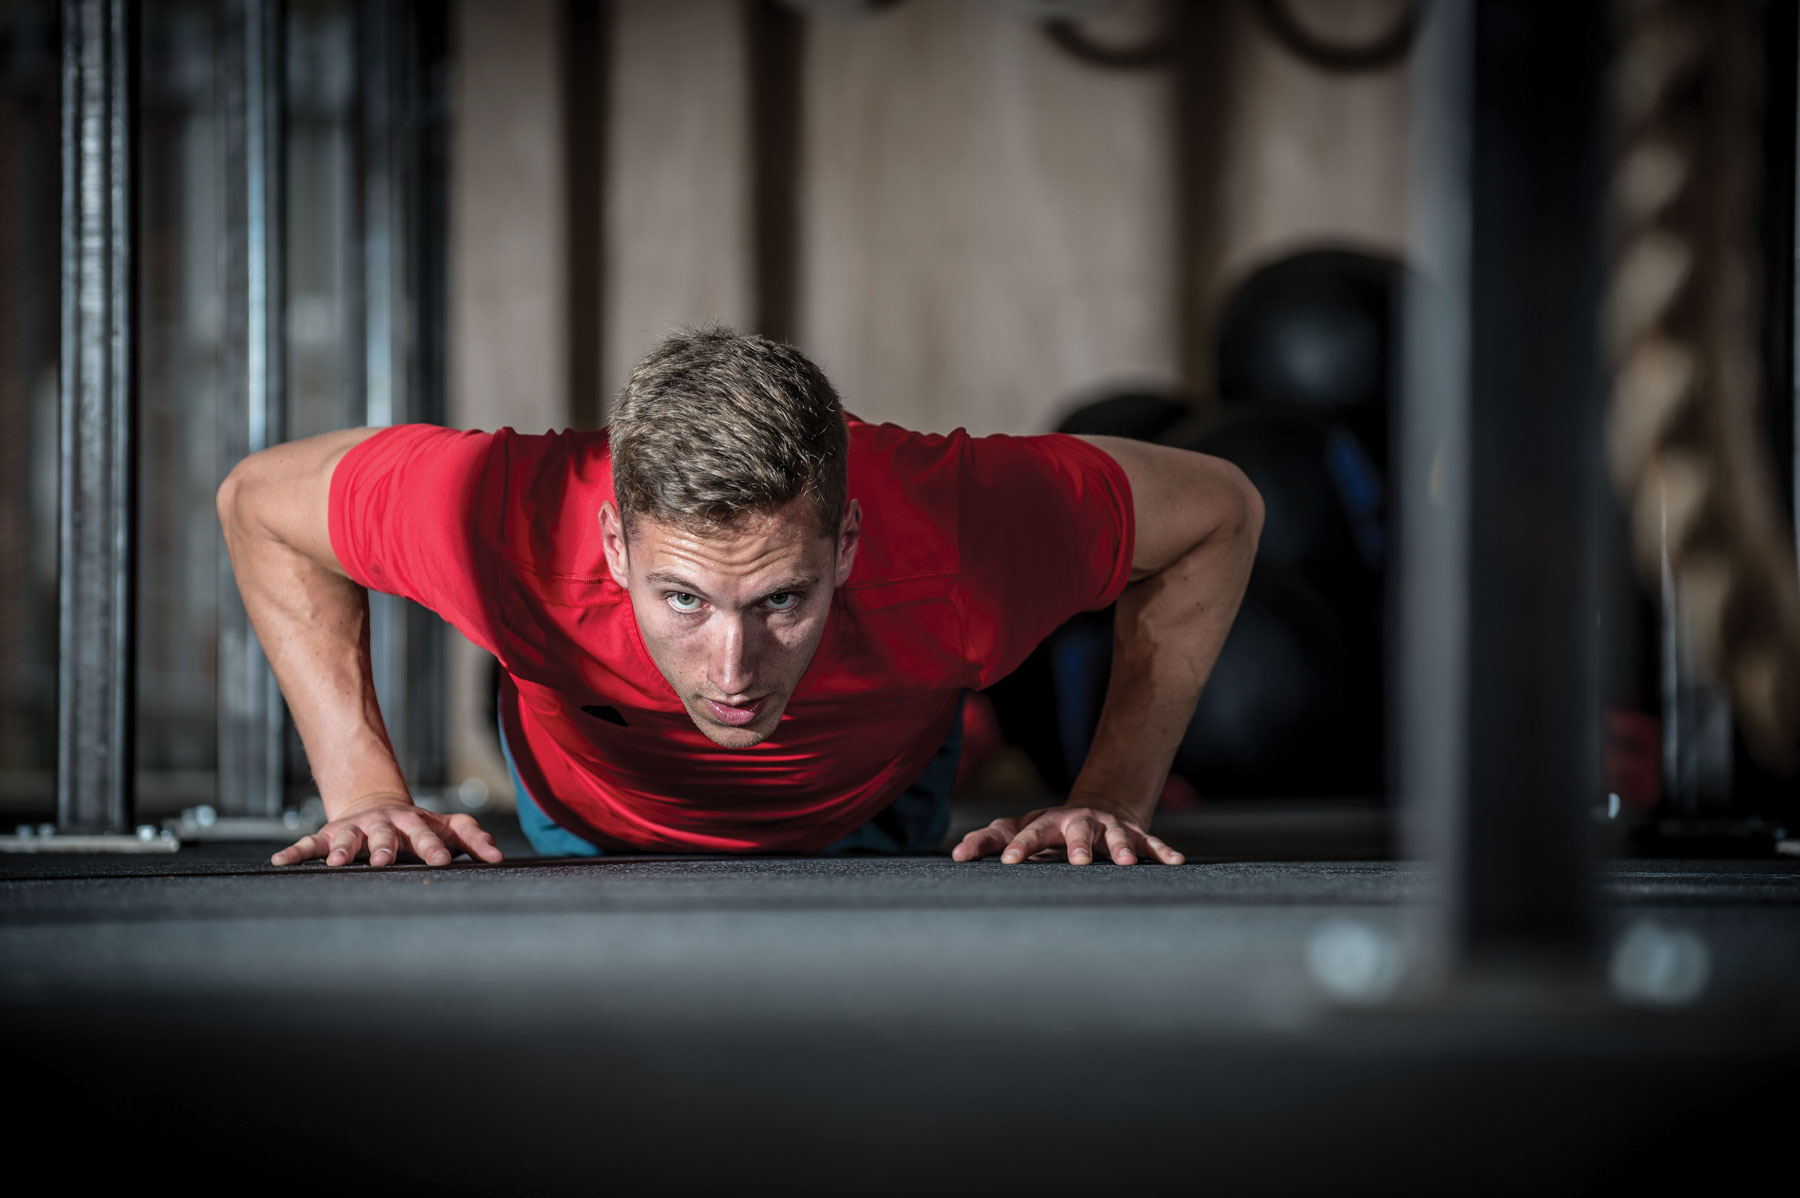 Fit for function: the workouts develop functional strength firefighters need in the line of duty.